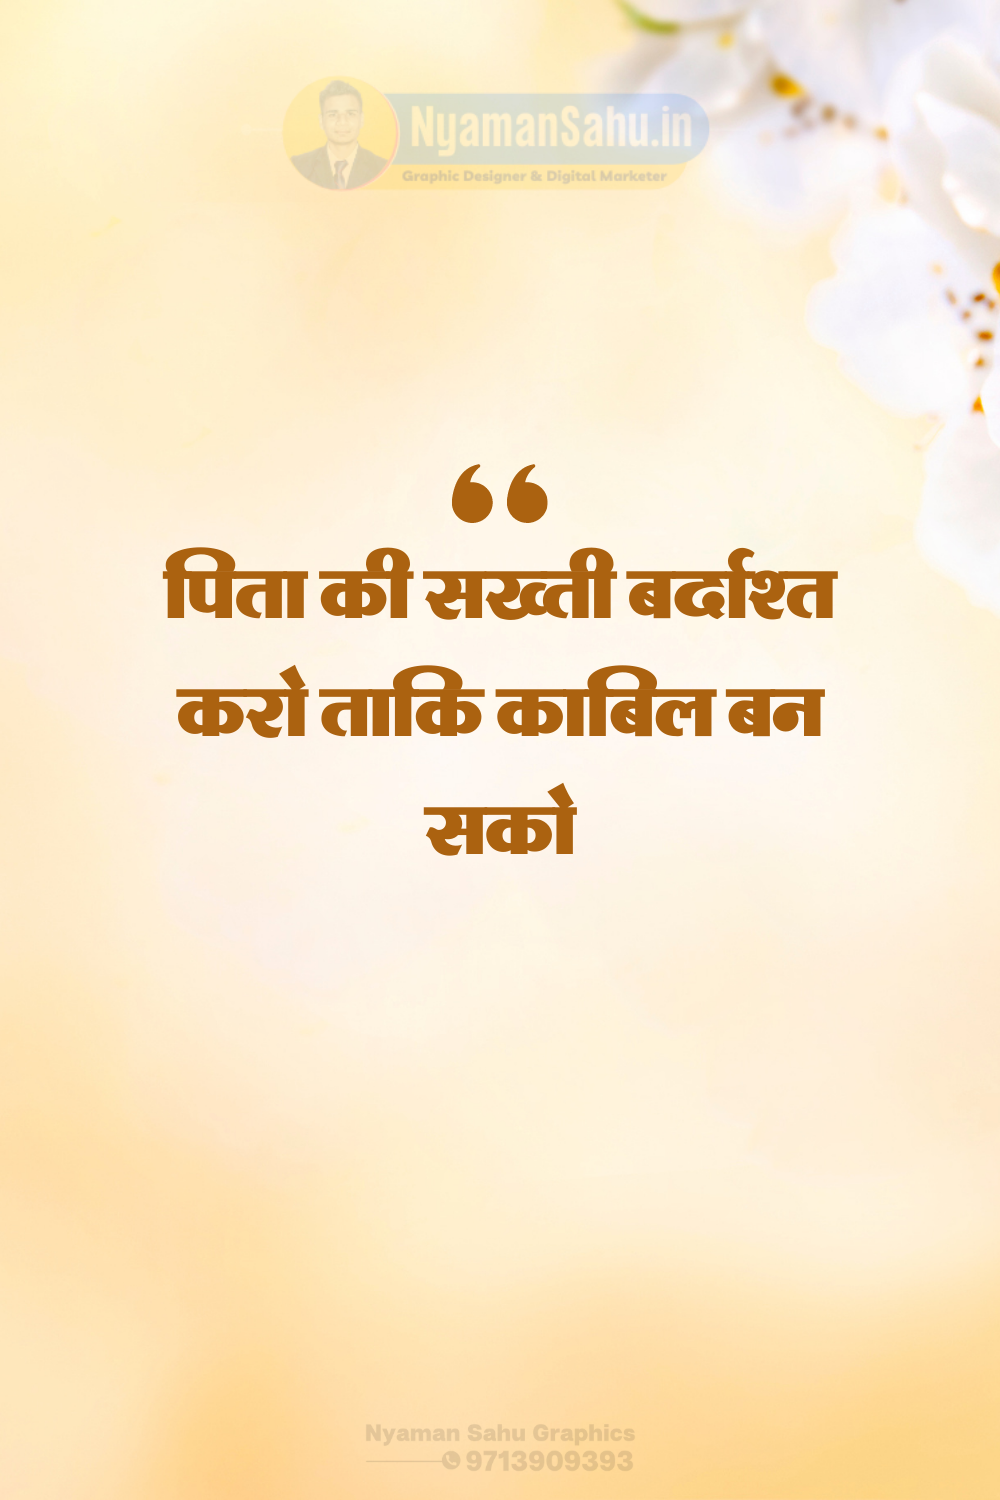 Best Father Quotes in Hindi, Fathers Day 2021 Images